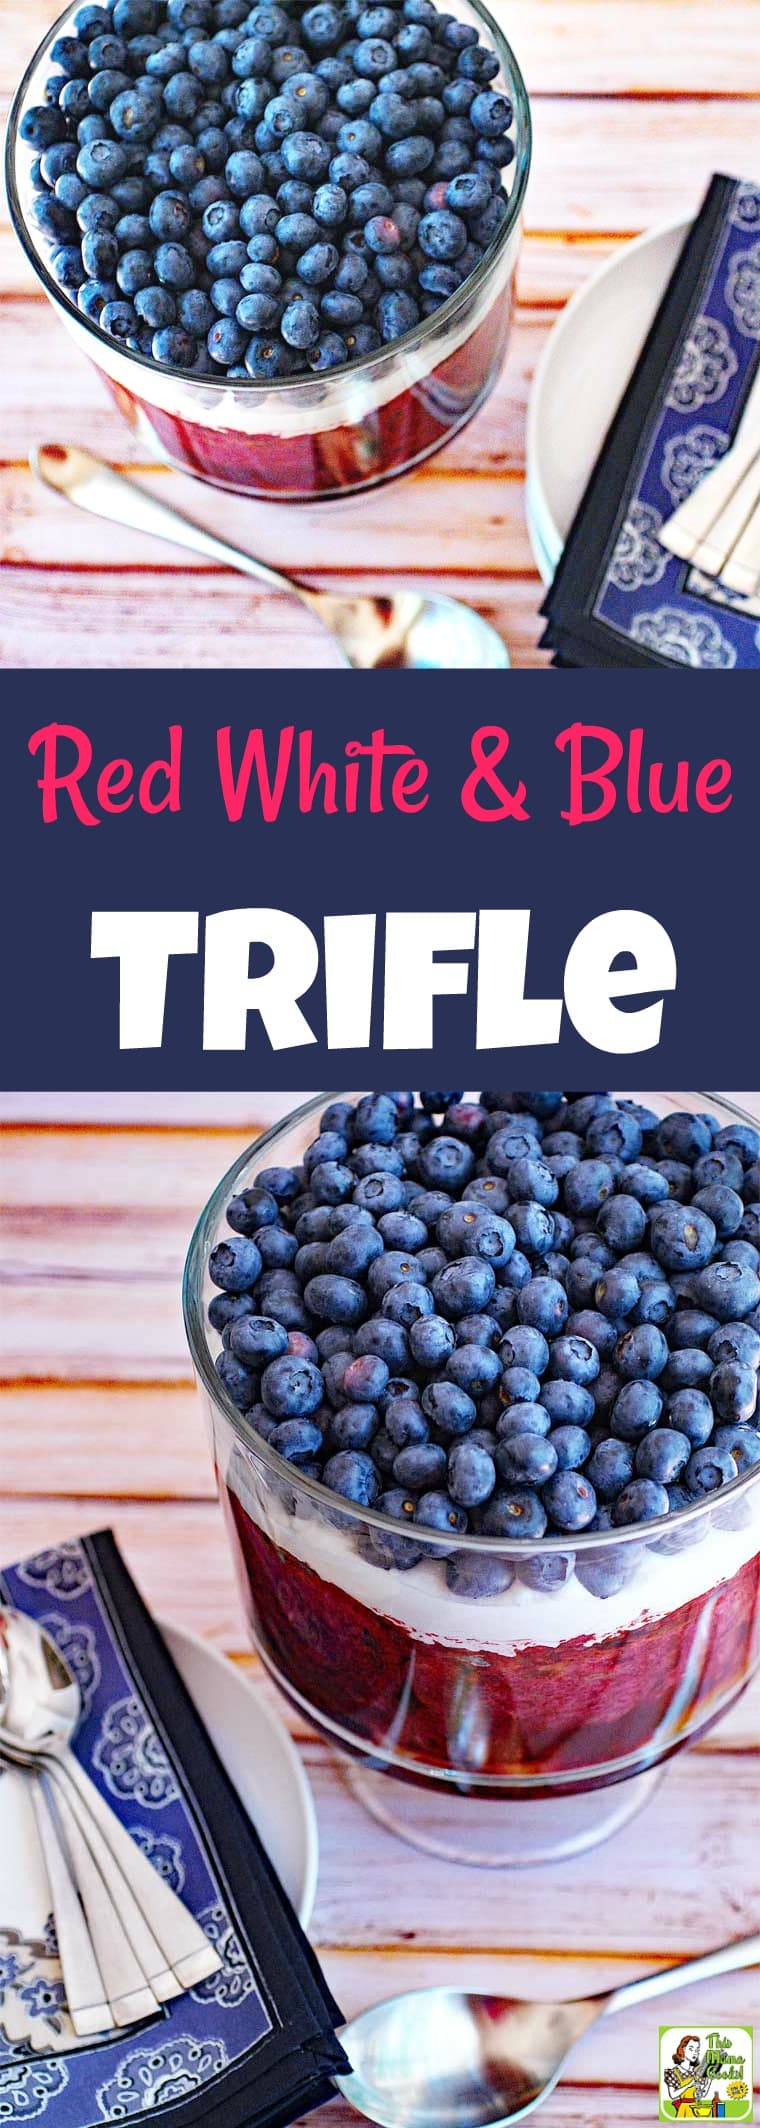 Make a Red White and Blue Trifle!